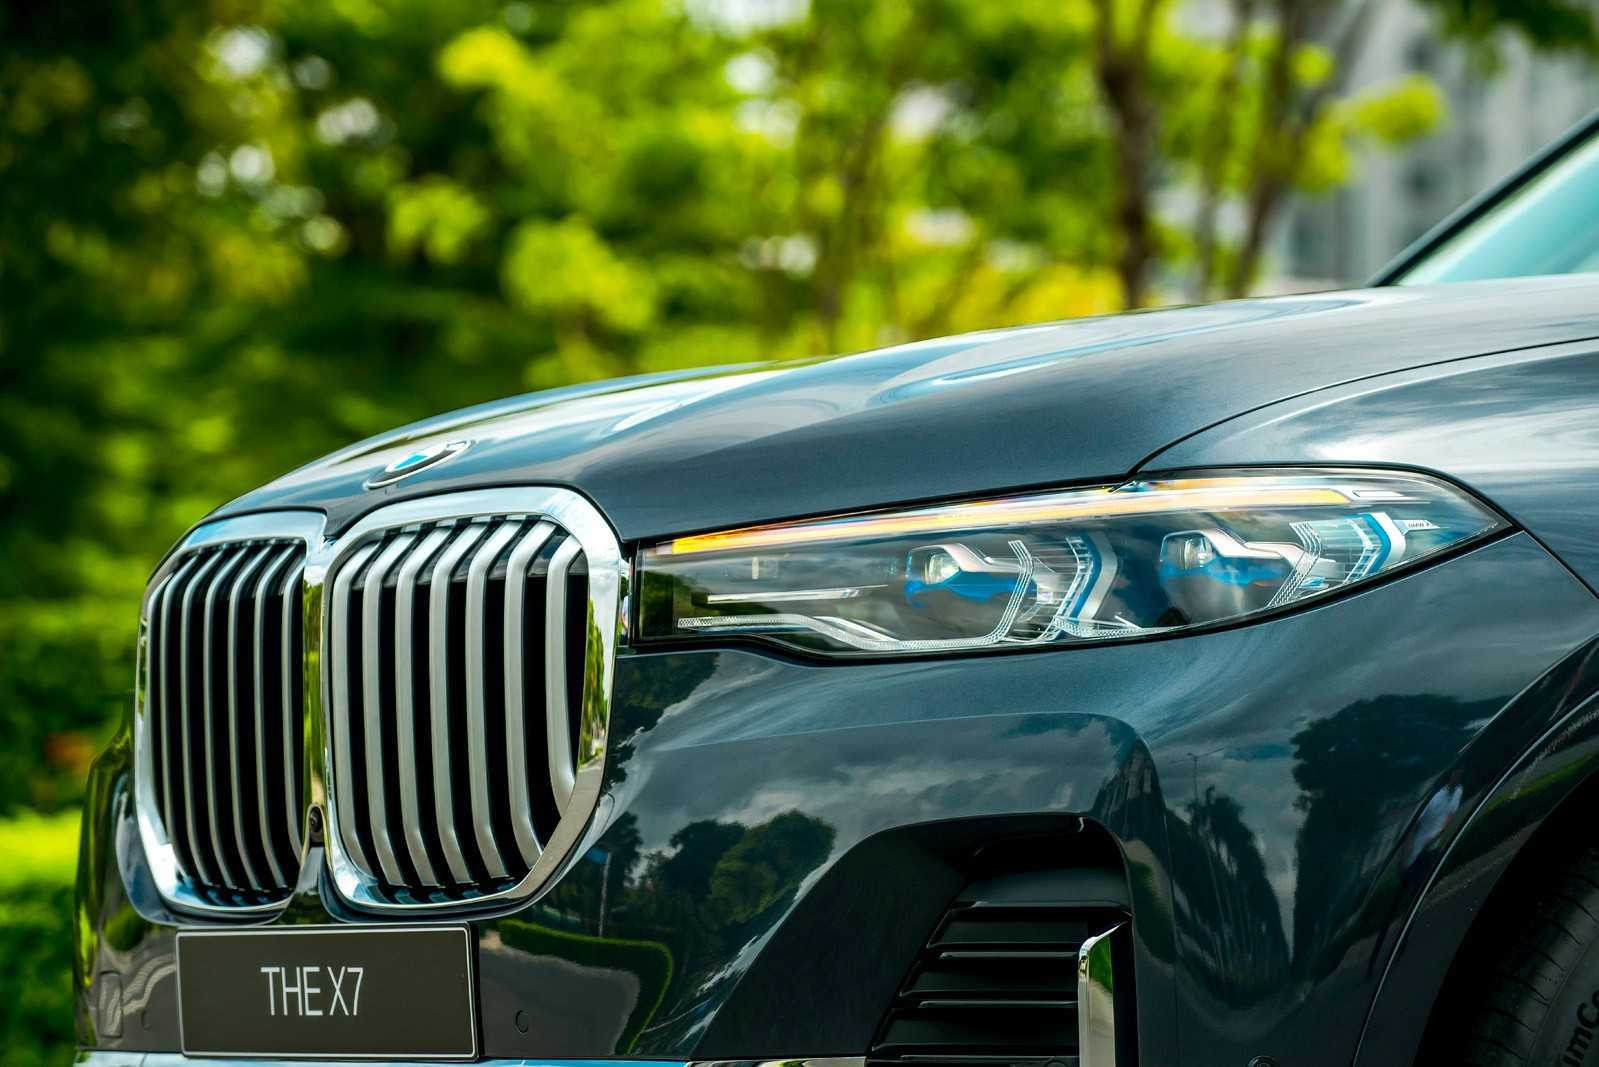 https://giaxe-bmw.vn/wp-content/uploads/2019/07/3-bmw-x7-chi-tiet-ngoai-that131-15624432143141616672500.jpg